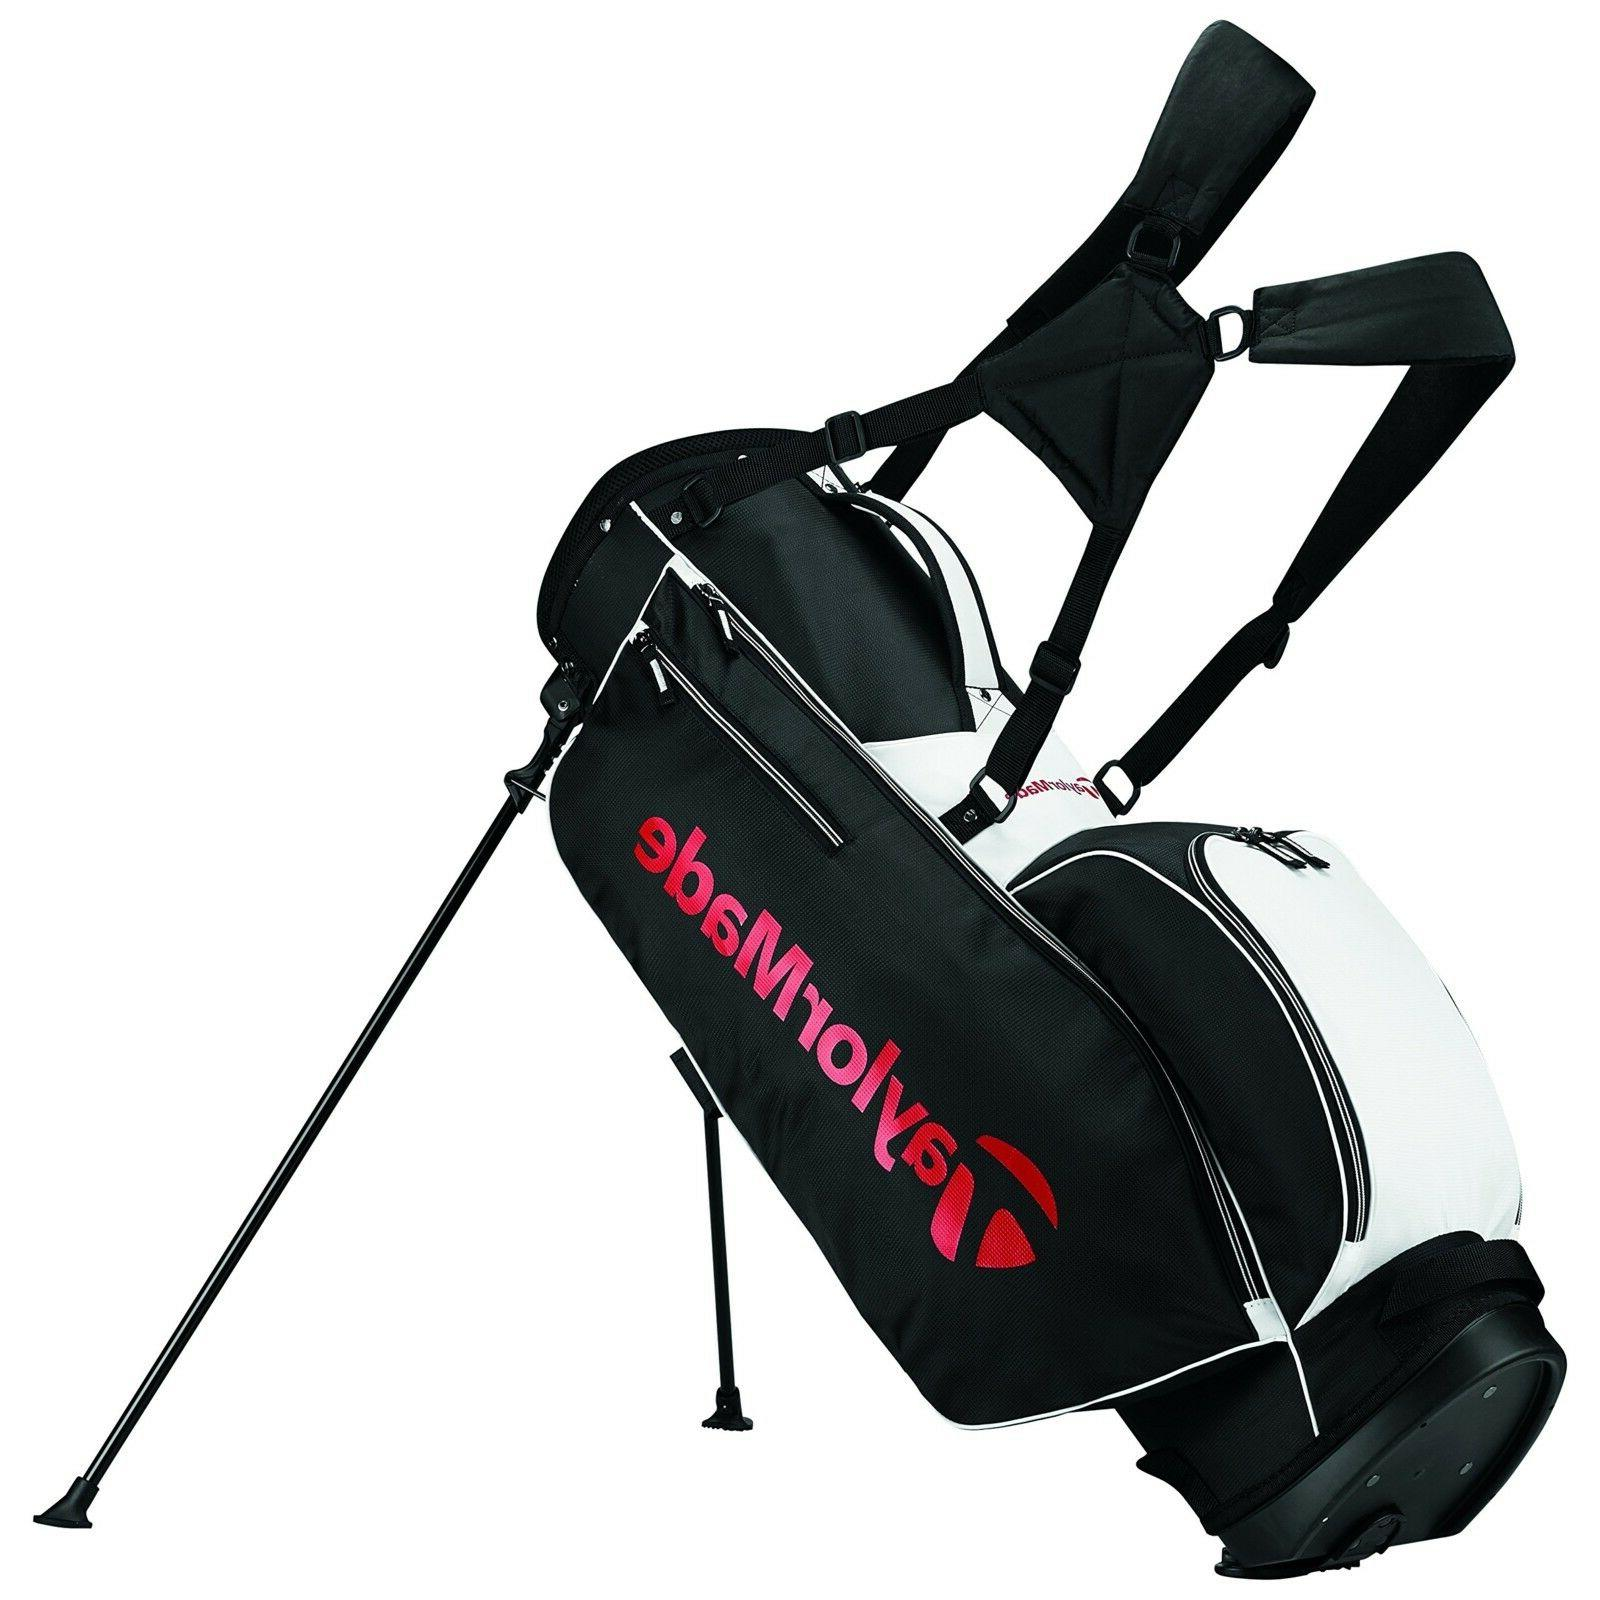 Taylormade Golf Bag >> New Taylormade Golf 2017 5 0 Stand Bag Black White Red